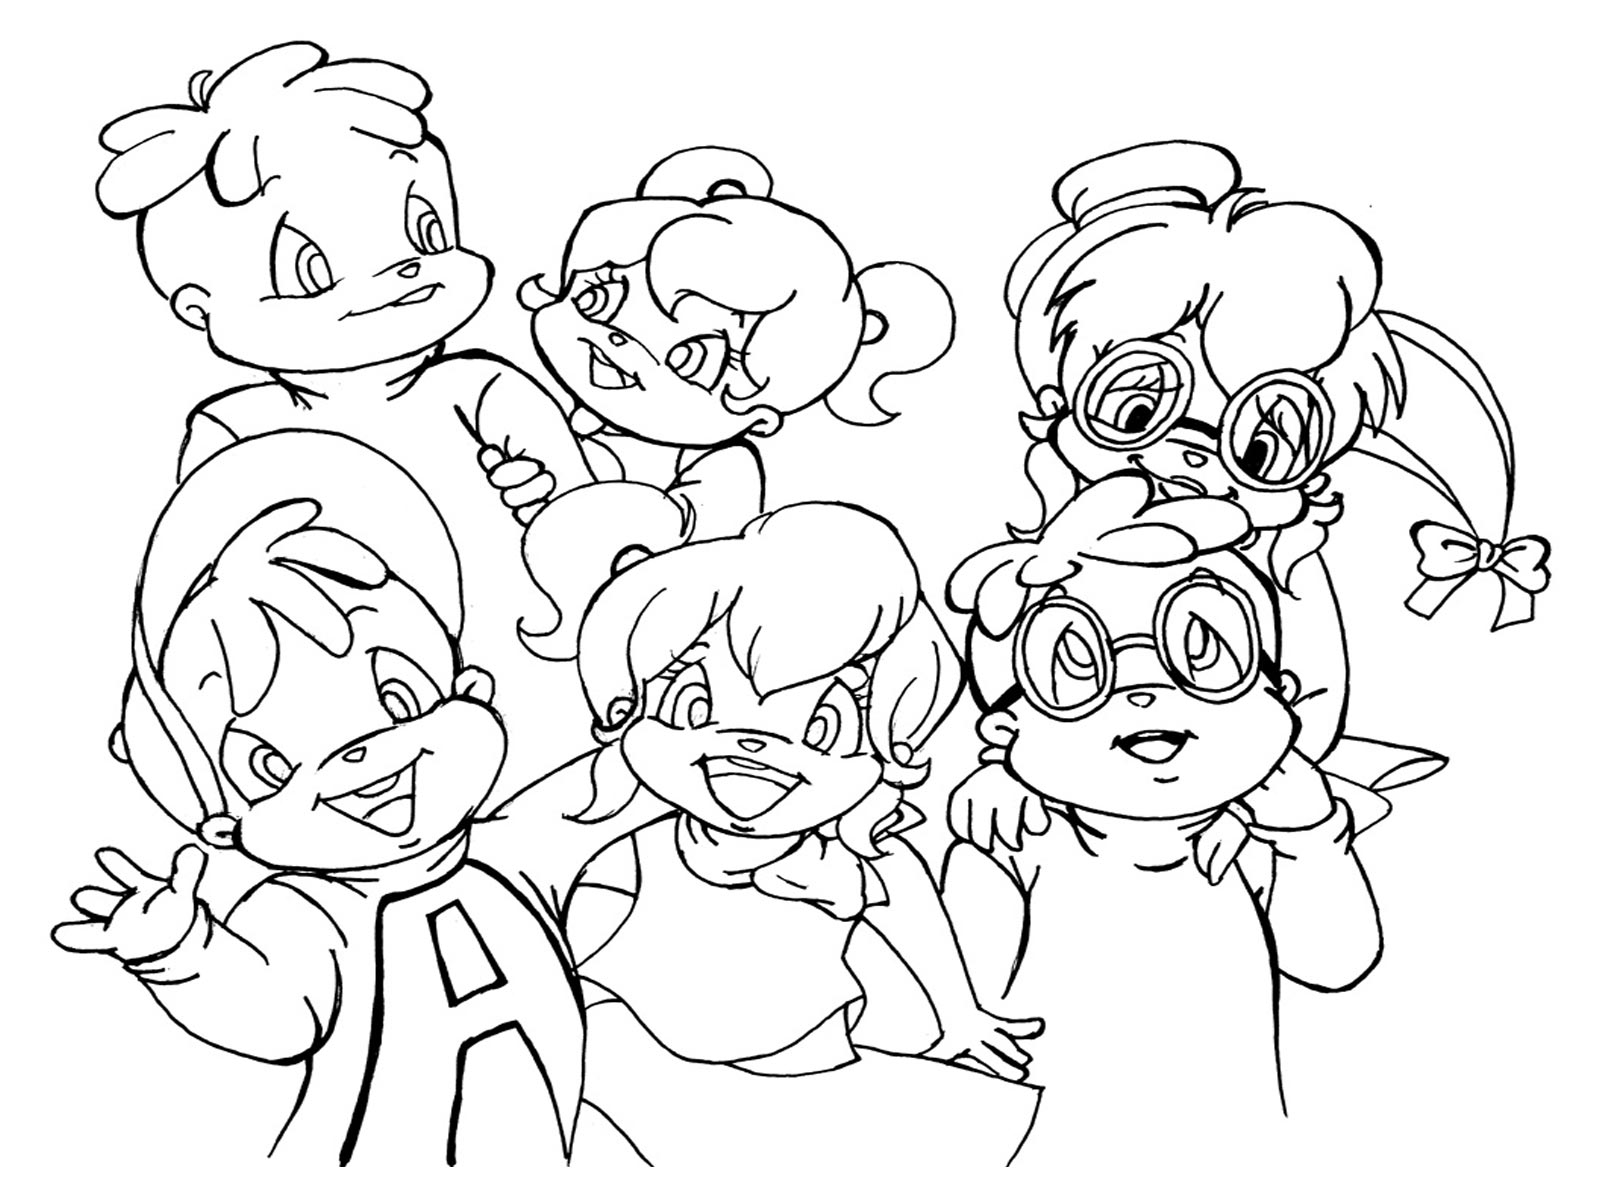 alvin and the chipmunks and chipettes coloring pages photo - 1